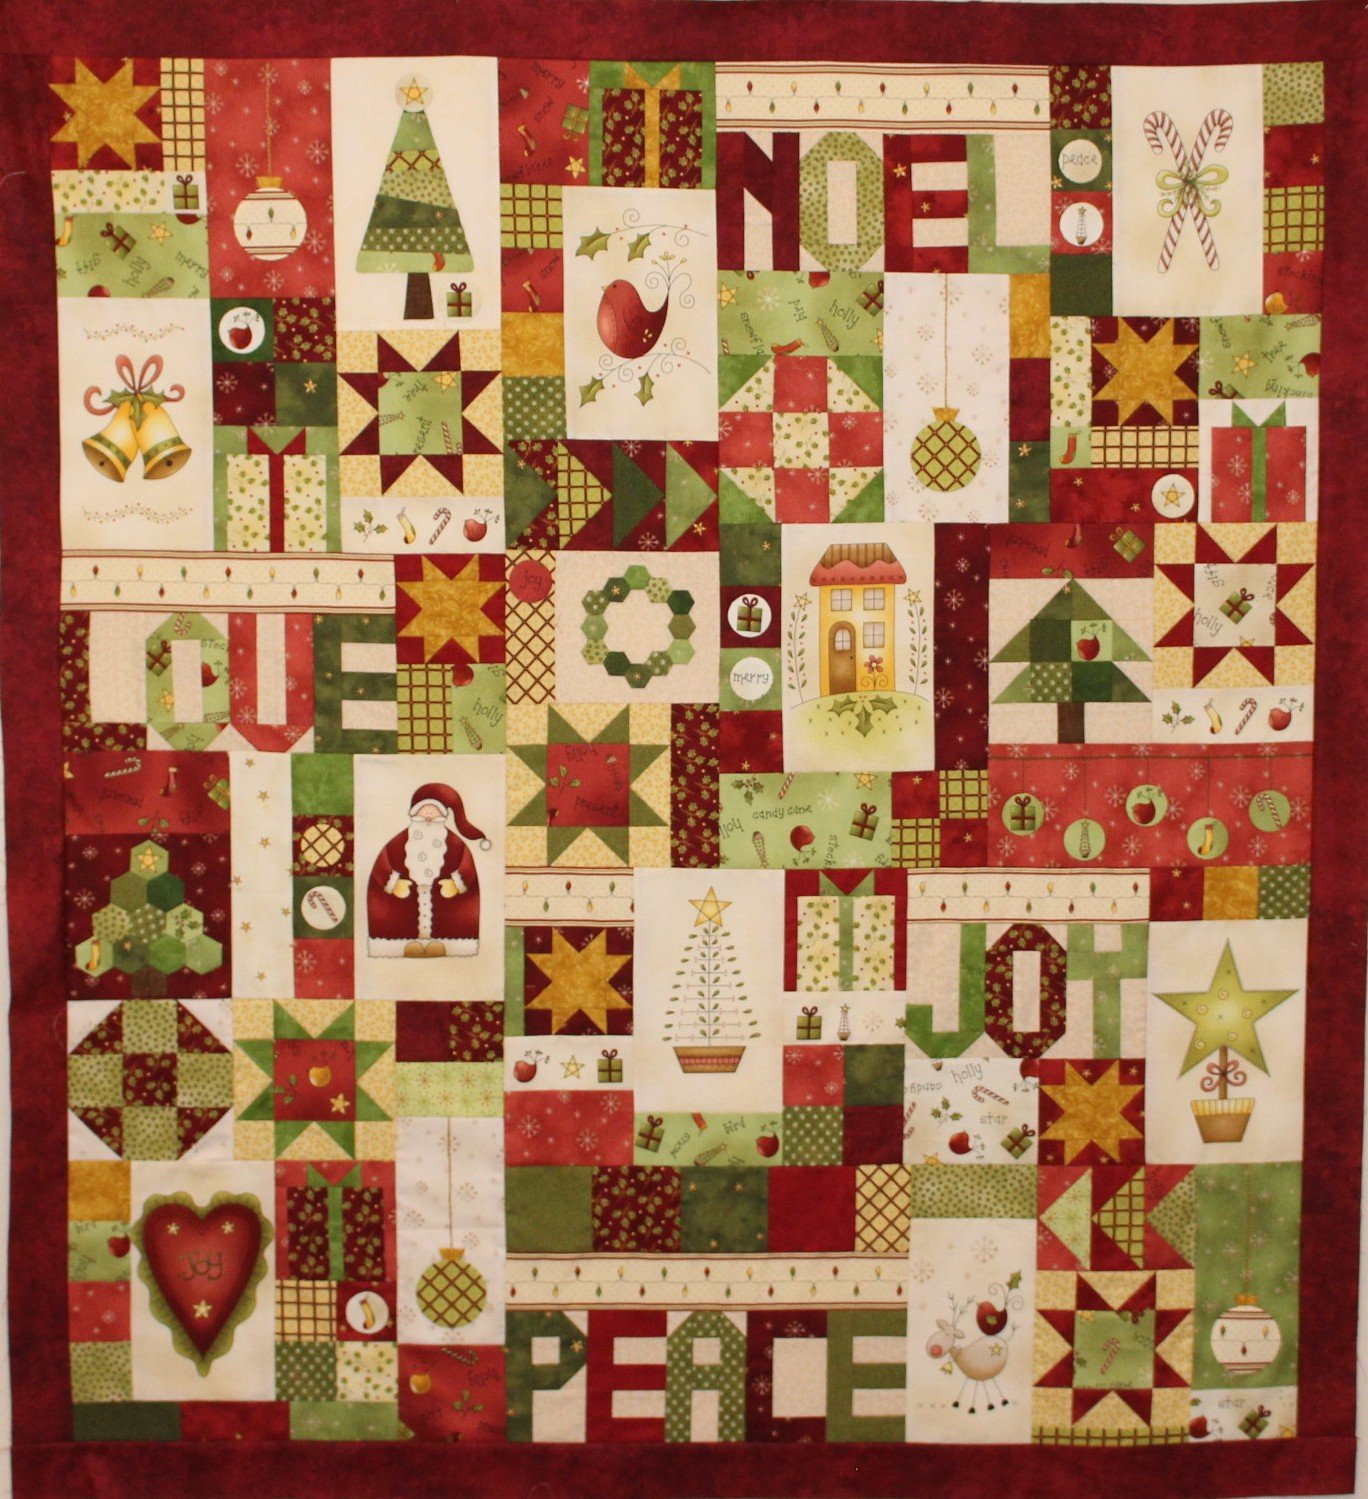 'Christmas Delights' Block of the Month Kit